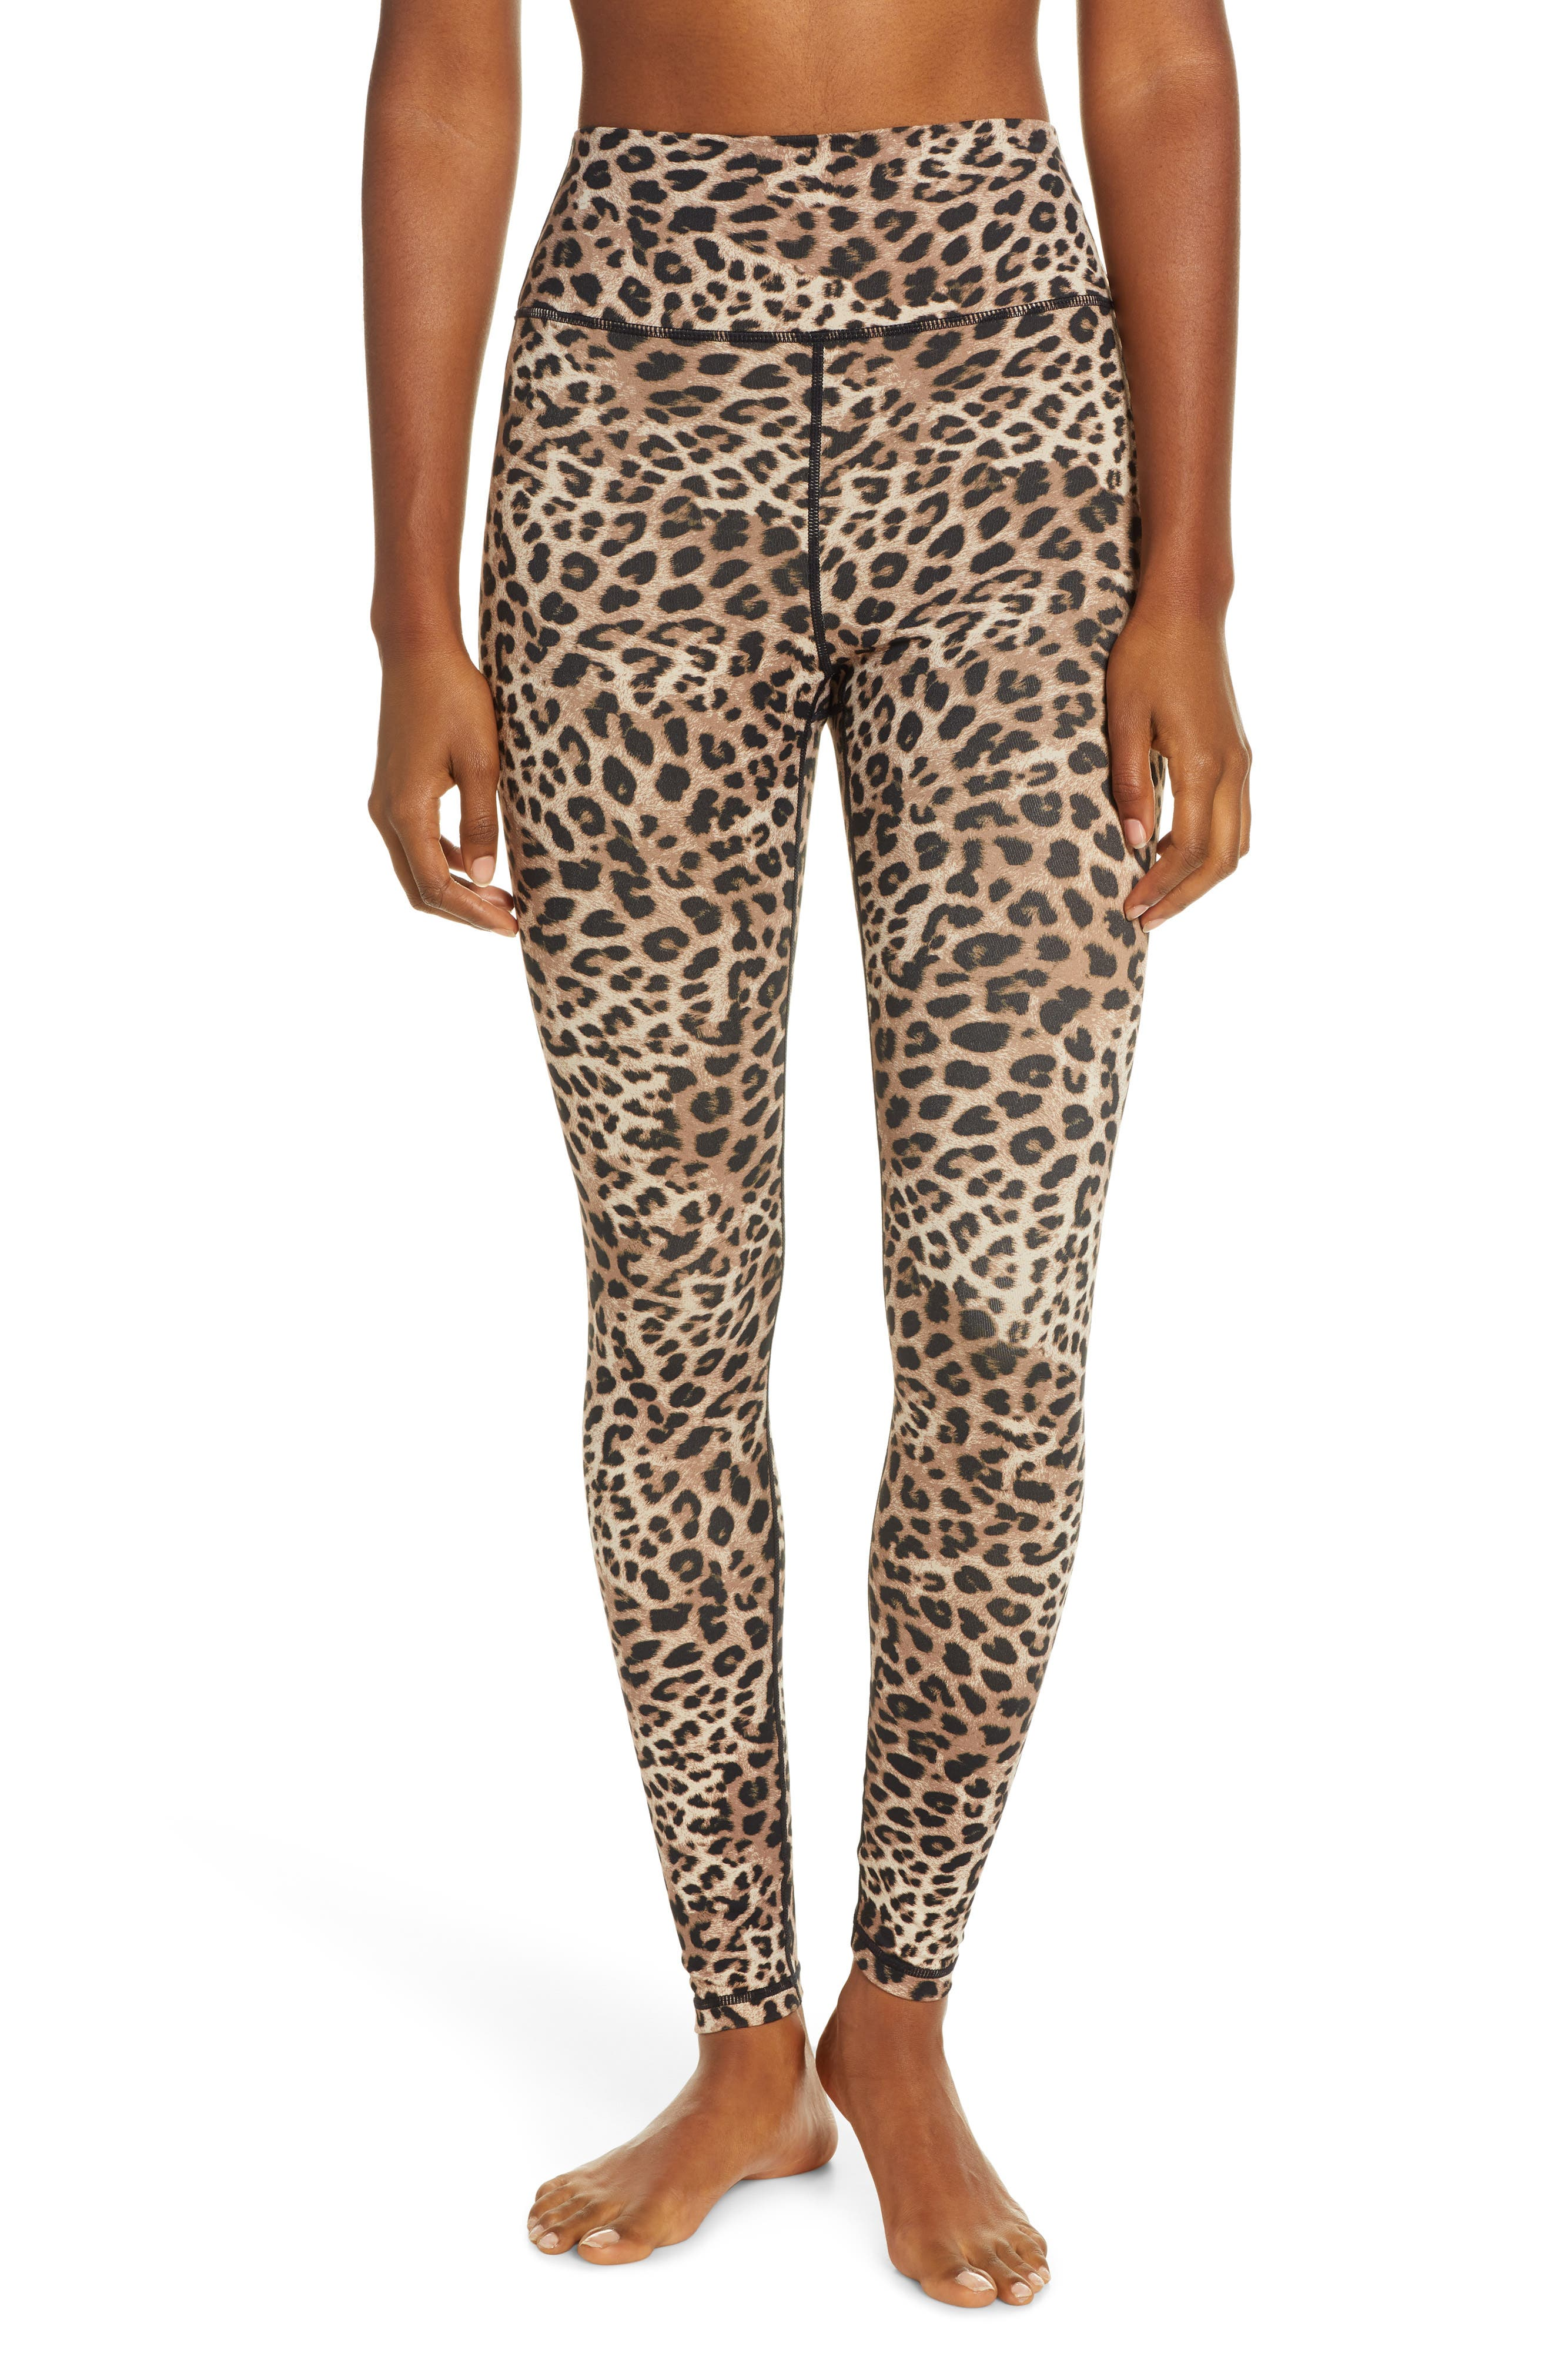 Feel the lithe power and movement of the cheetah in these performance leggings featuring smooth, irritation-free flatlock seams and a supportive wide waist. Style Name: Spritual Gangster Perfect Cheetah Print Leggings. Style Number: 5905170. Available in stores.